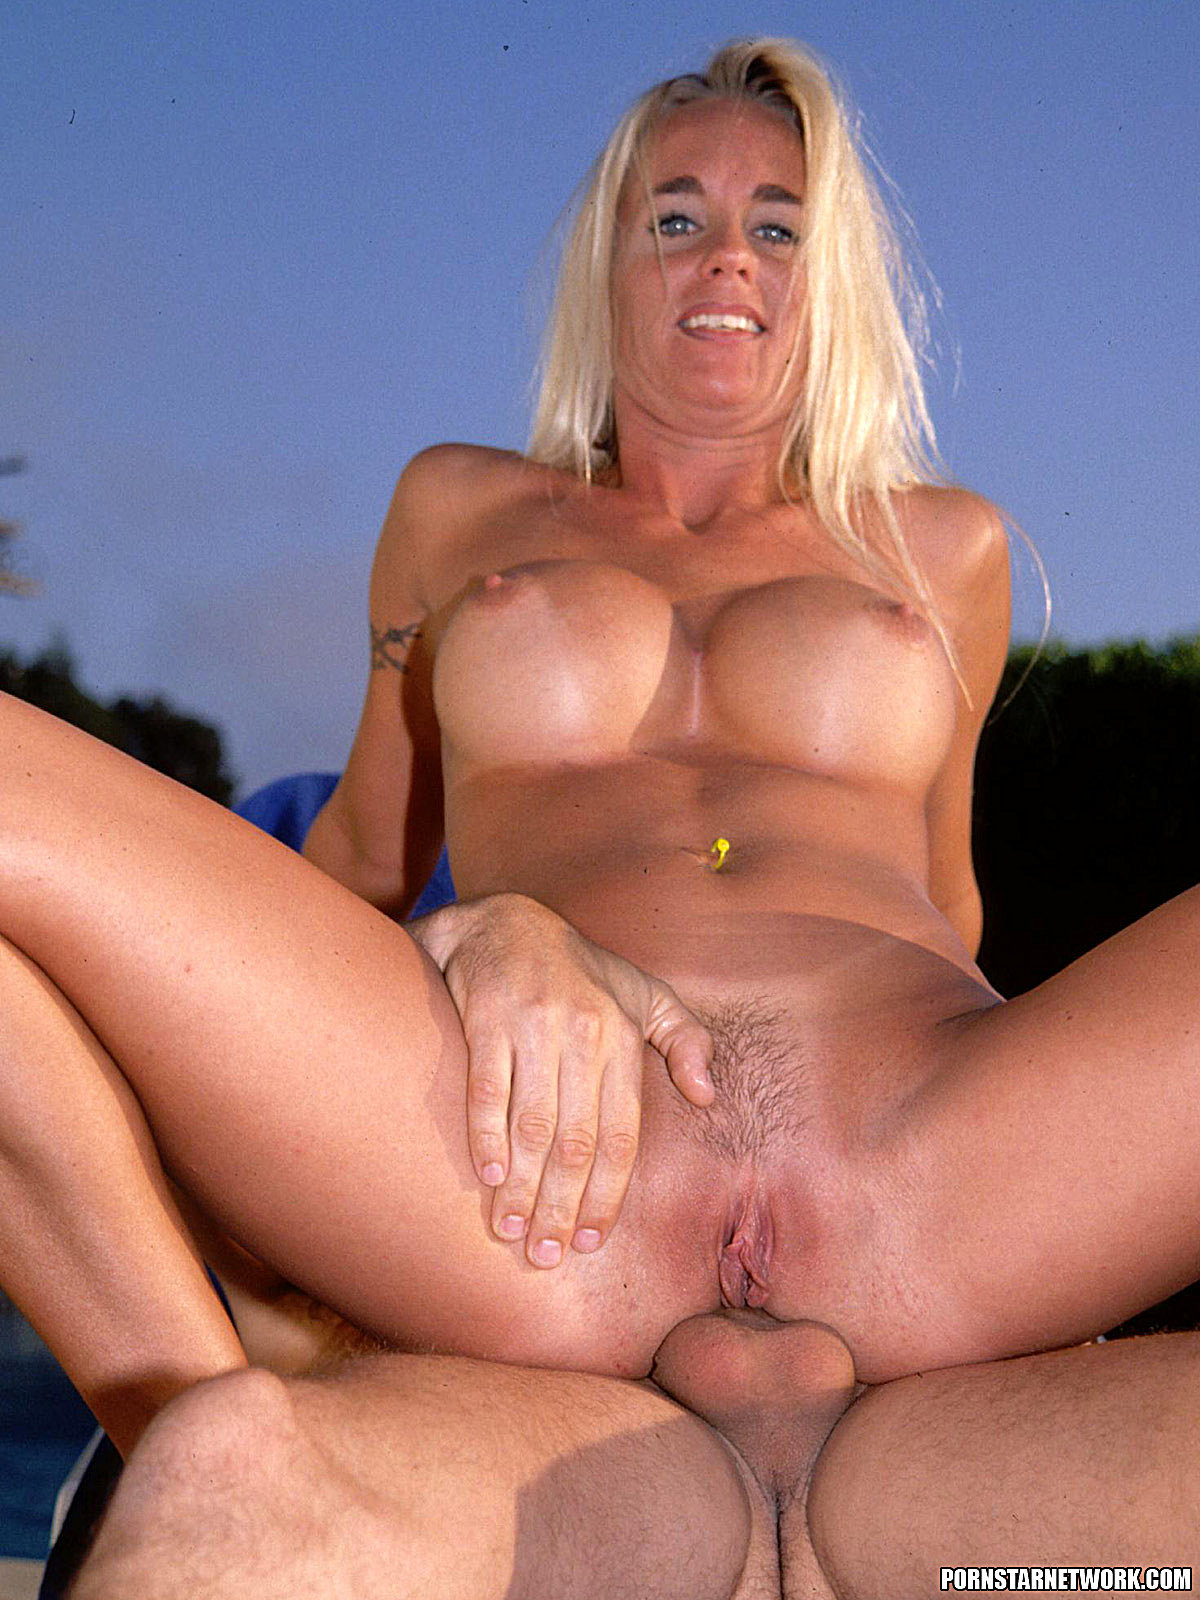 Cheyanne - Blonde Milf With Big Tits Loves Anal 58557-1680